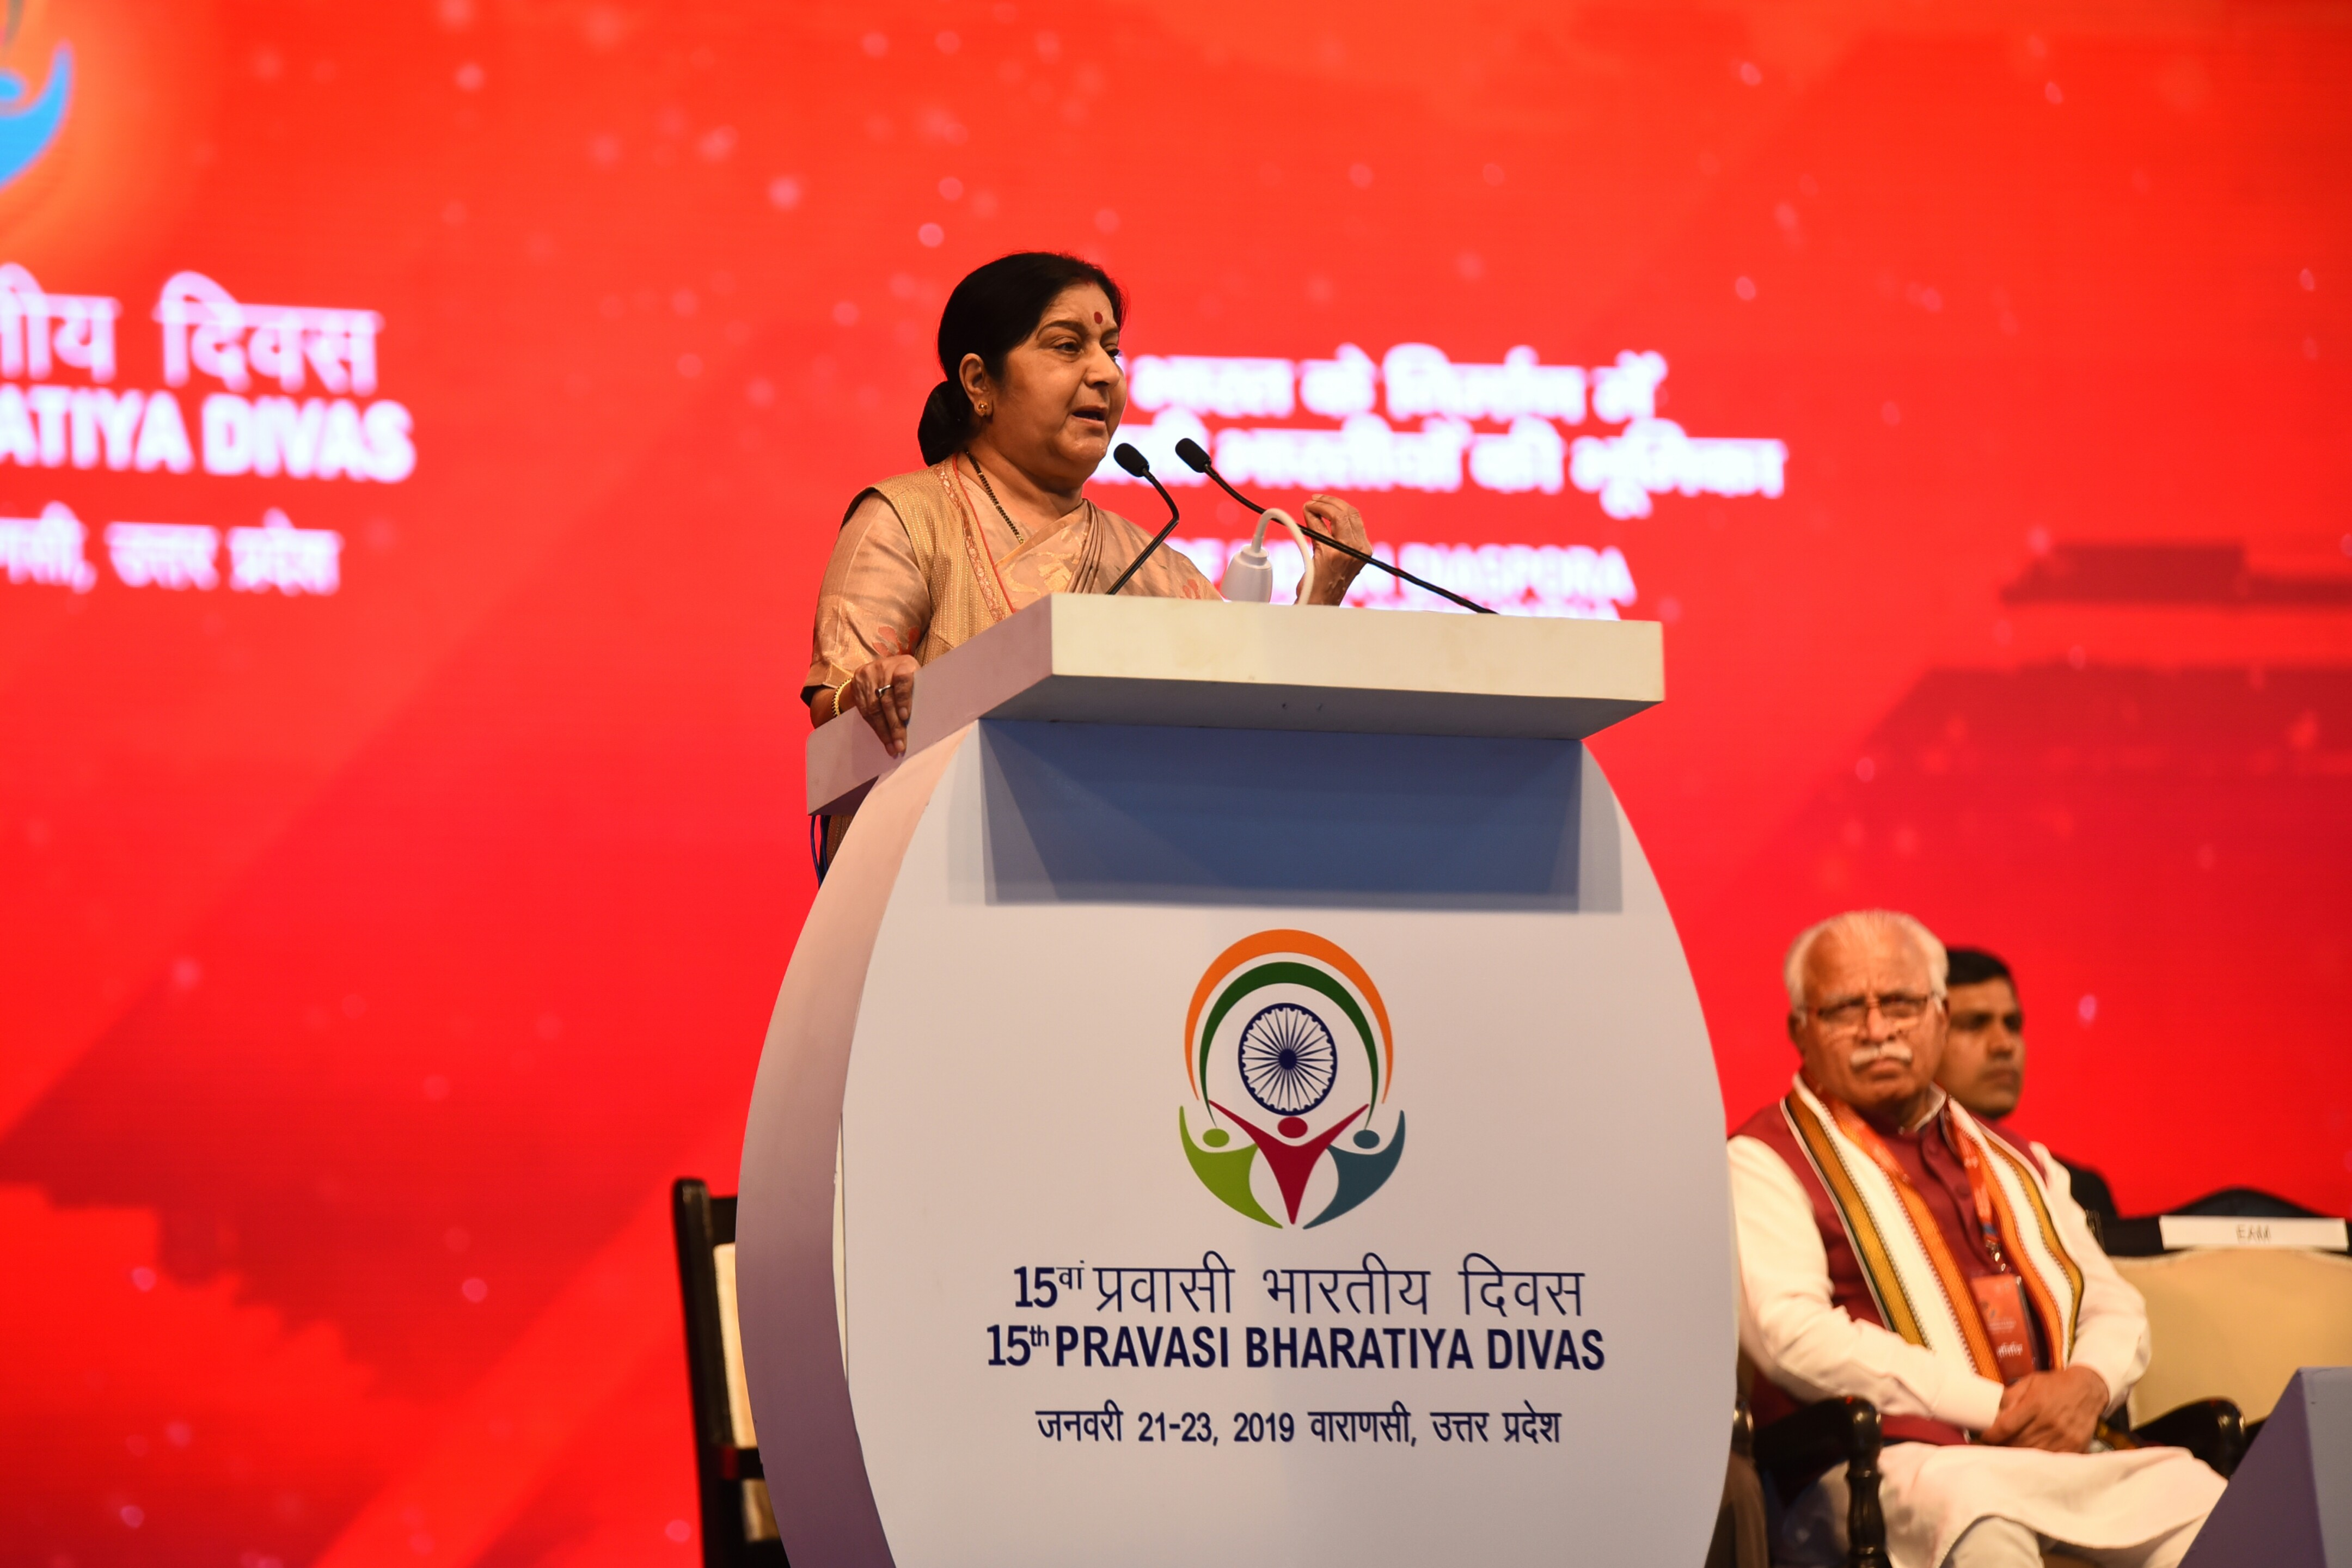 External Affairs Minister delivers her address at Inauguration of 15th Pravasi Bhartiya Divas Convention 2019